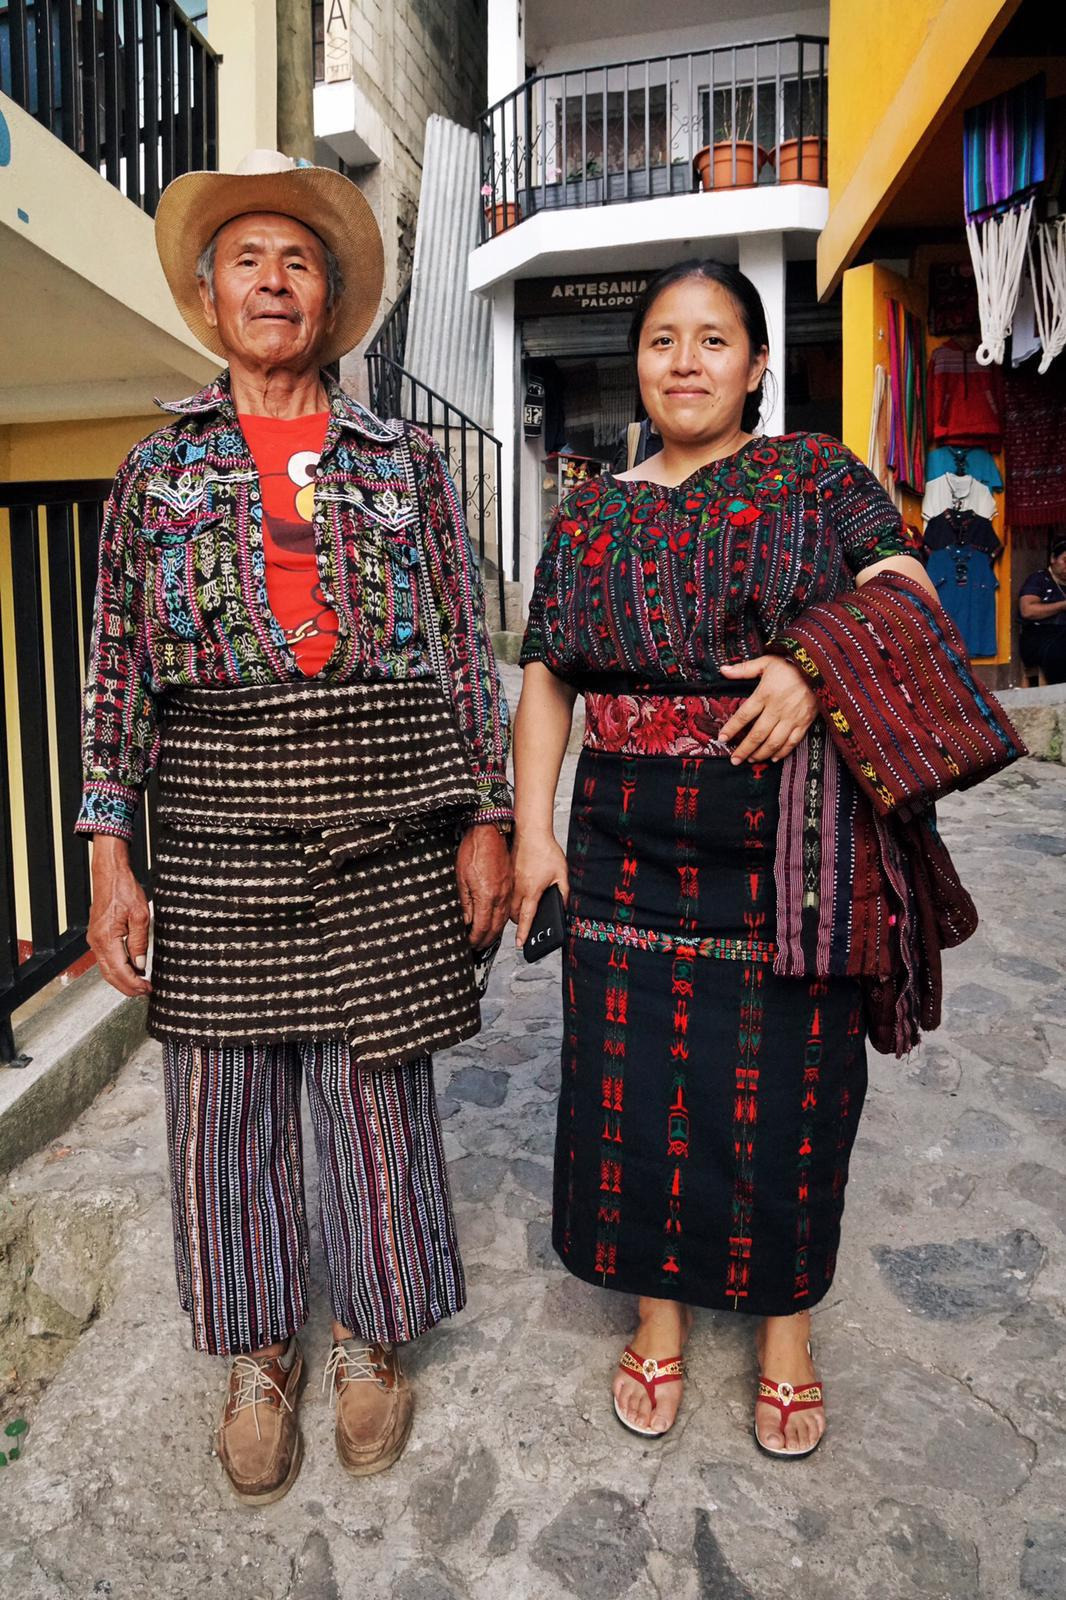 There are over a million handicraft producers in Guatemala.